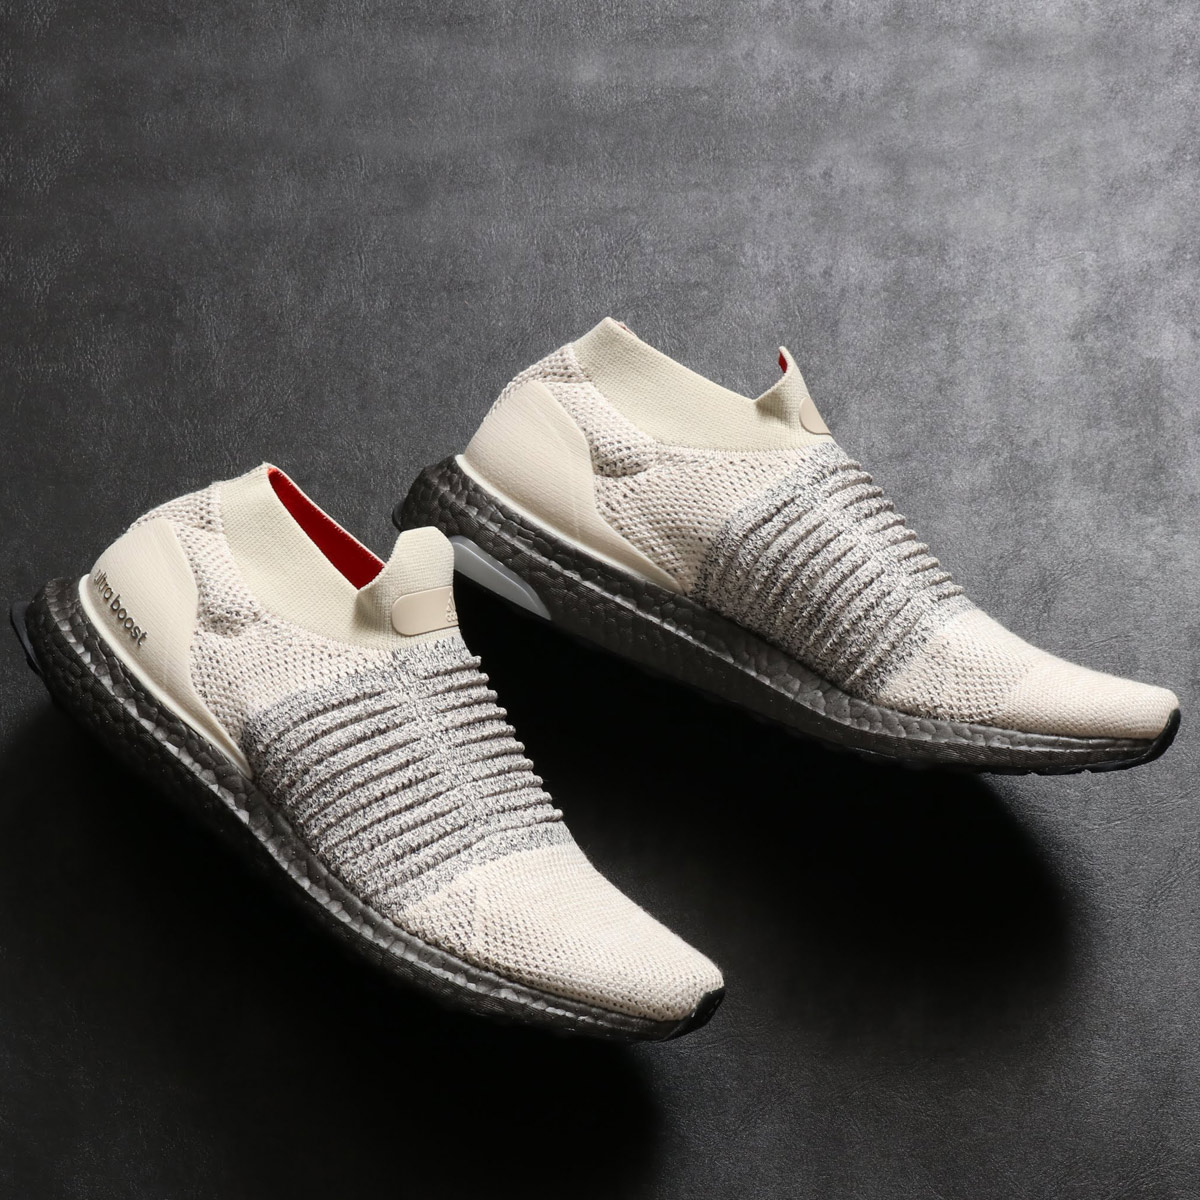 adidas UltraBOOST LACELESS (Adidas ultra boost race reply) CLEAR BROWNCLOUD WHITECARBON 18FW I